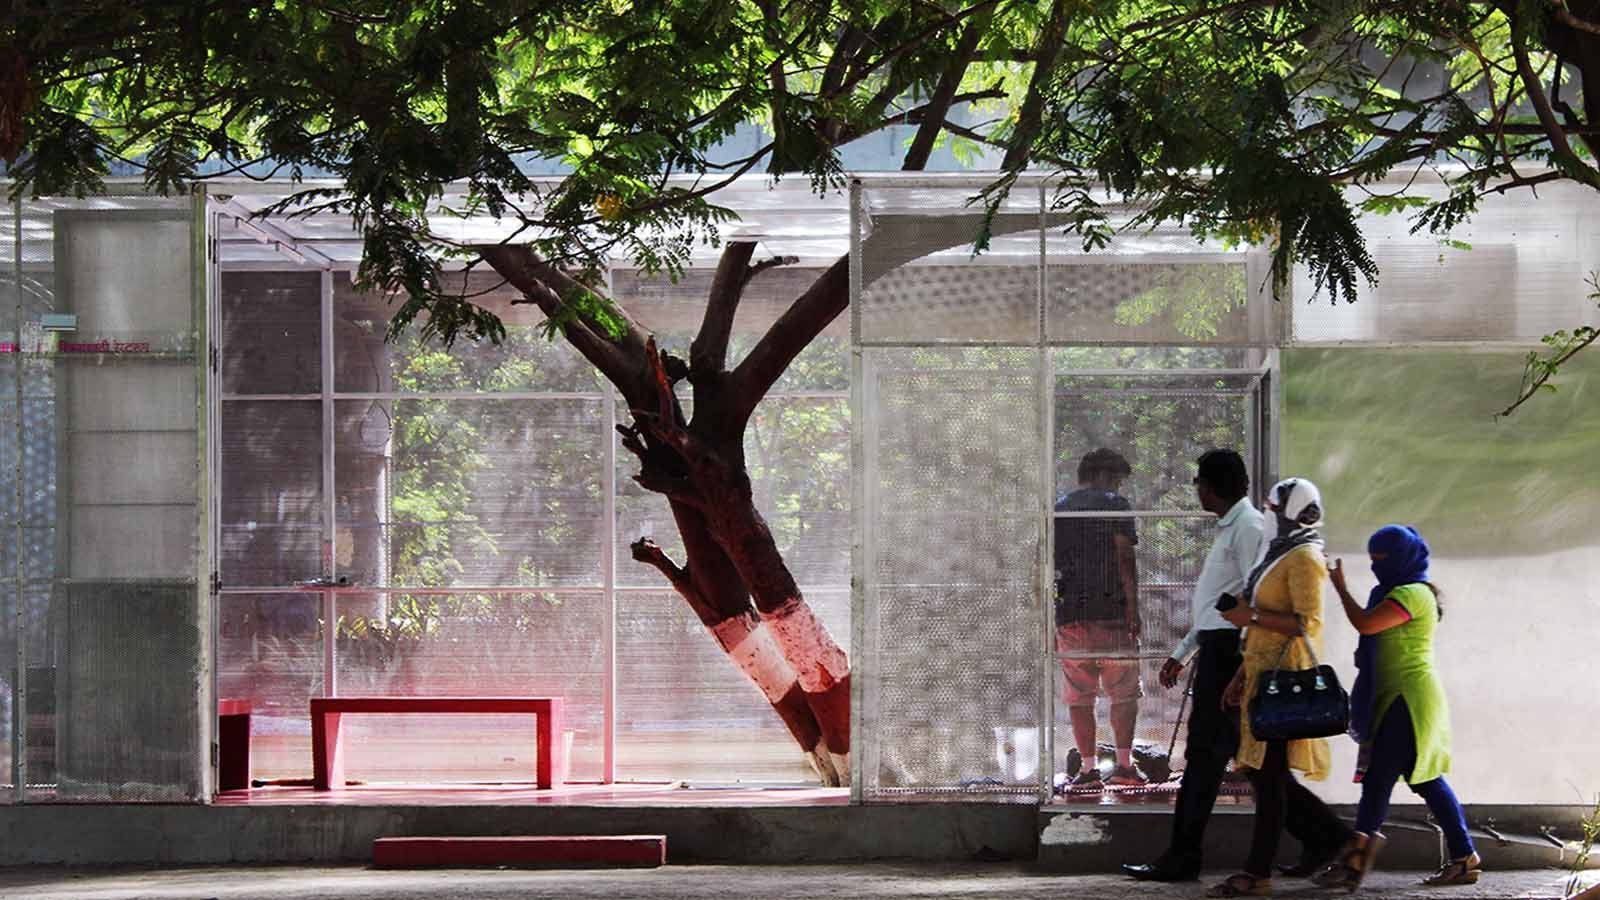 The Lightbox- restroom for women, Thane, RC Architects - Sheet4